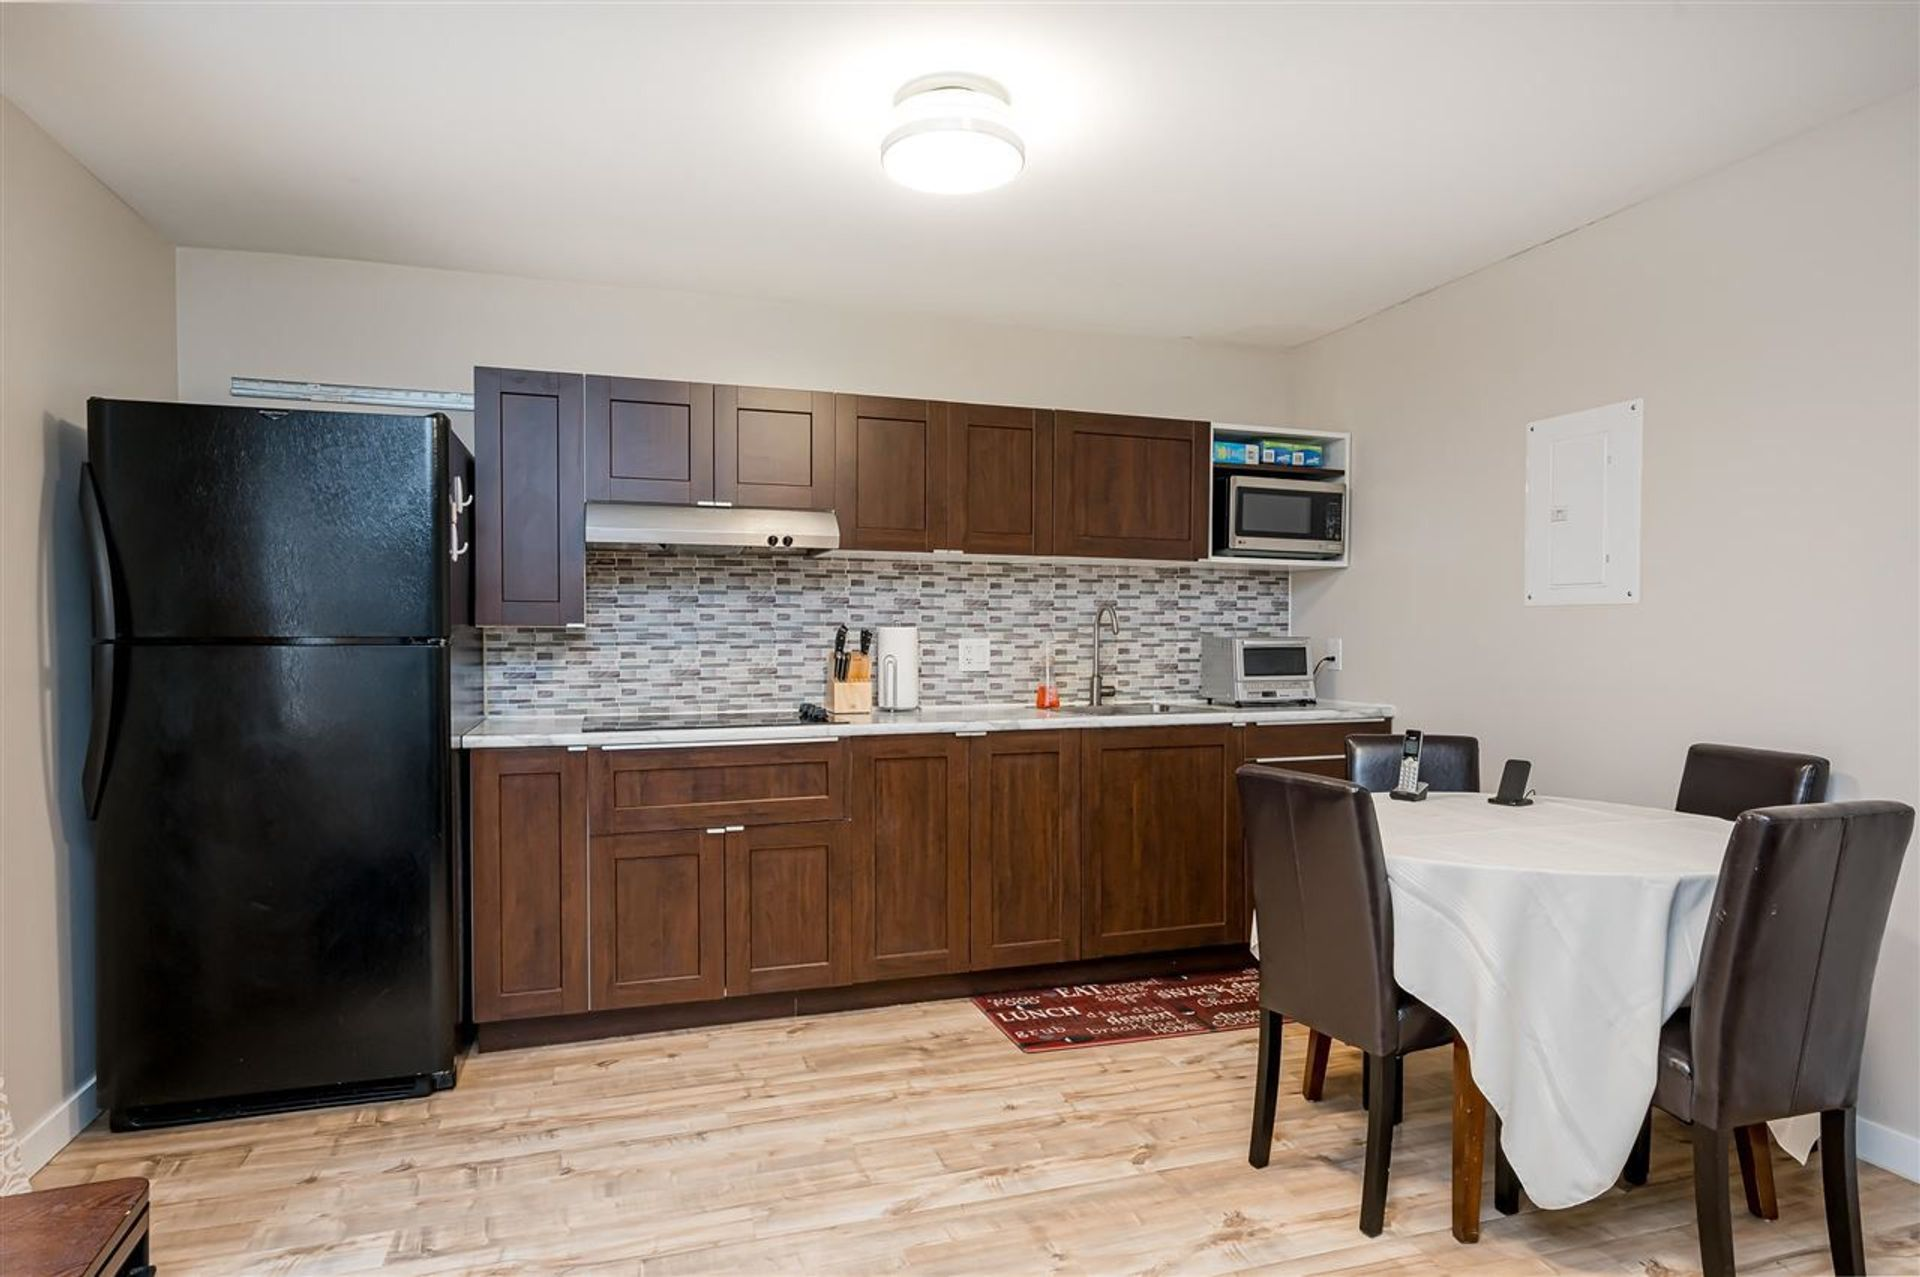 16538-60th-ave-avenue-cloverdale-bc-cloverdale-22 at 16538 60th Ave Avenue, Cloverdale BC, Cloverdale